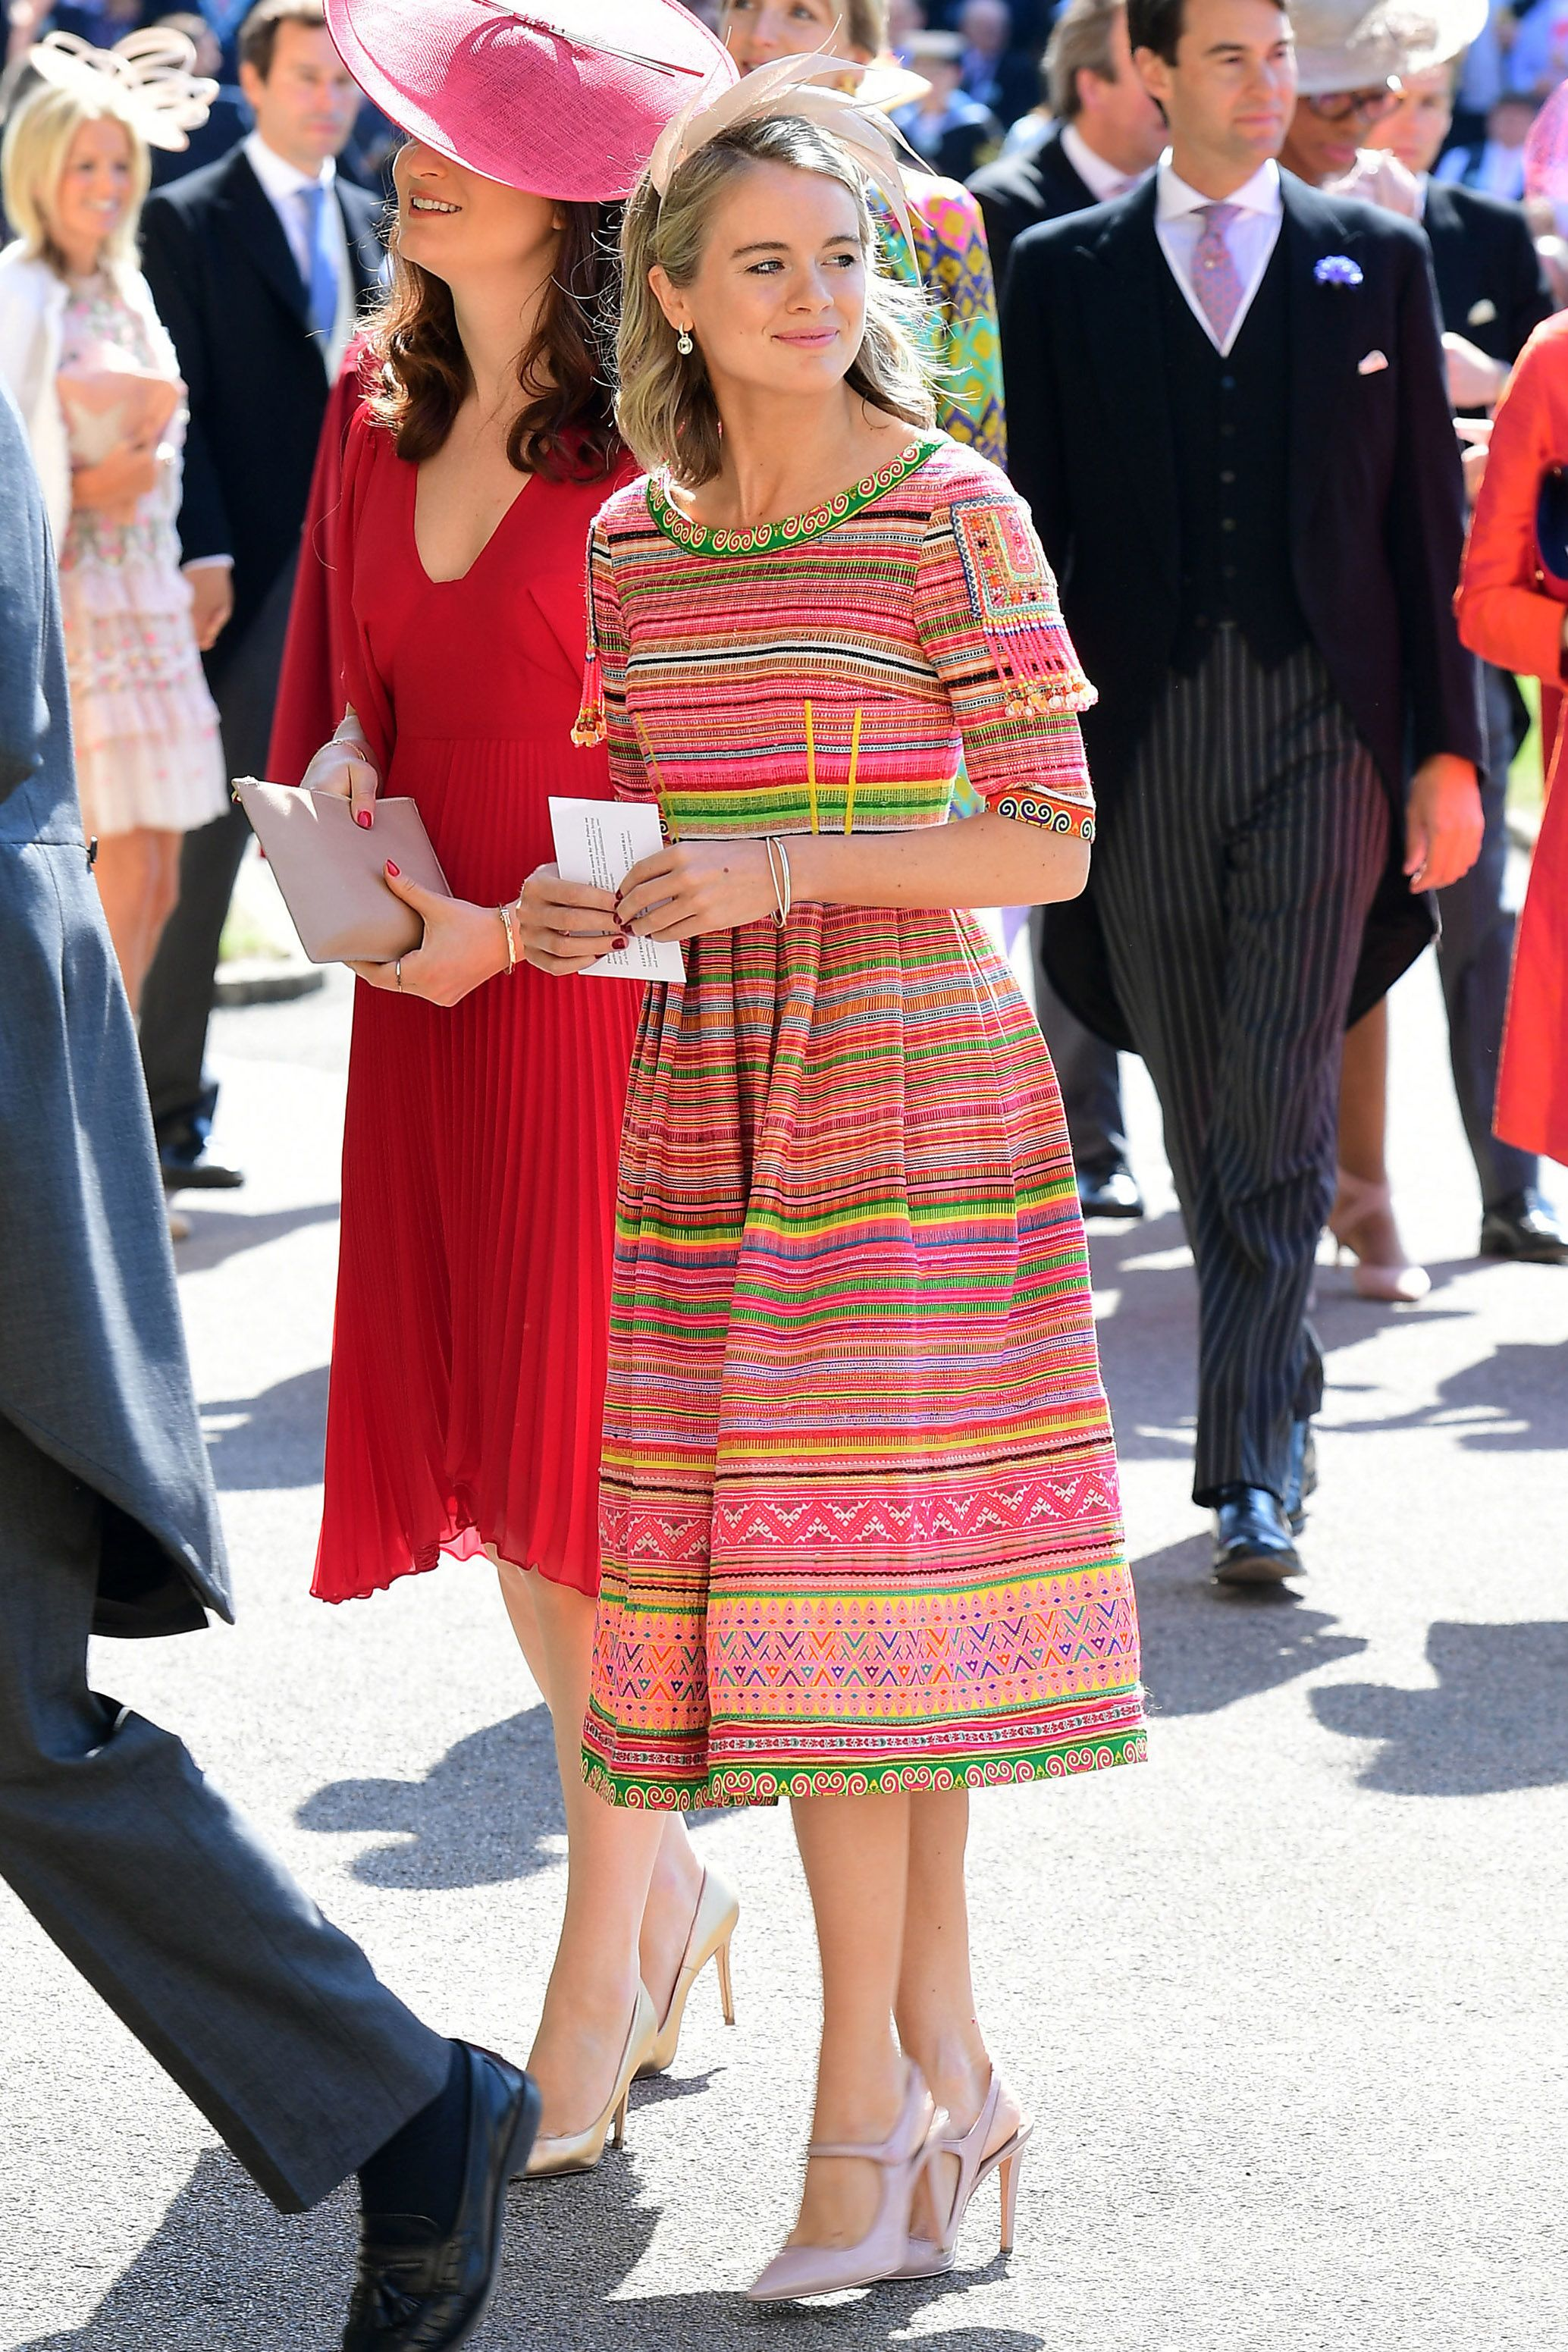 Prince Harry's ex-girlfriend is dressed in a bright colored striped tea-length dress. MORE : A Look Back at Prince Harry's Former Girlfriends